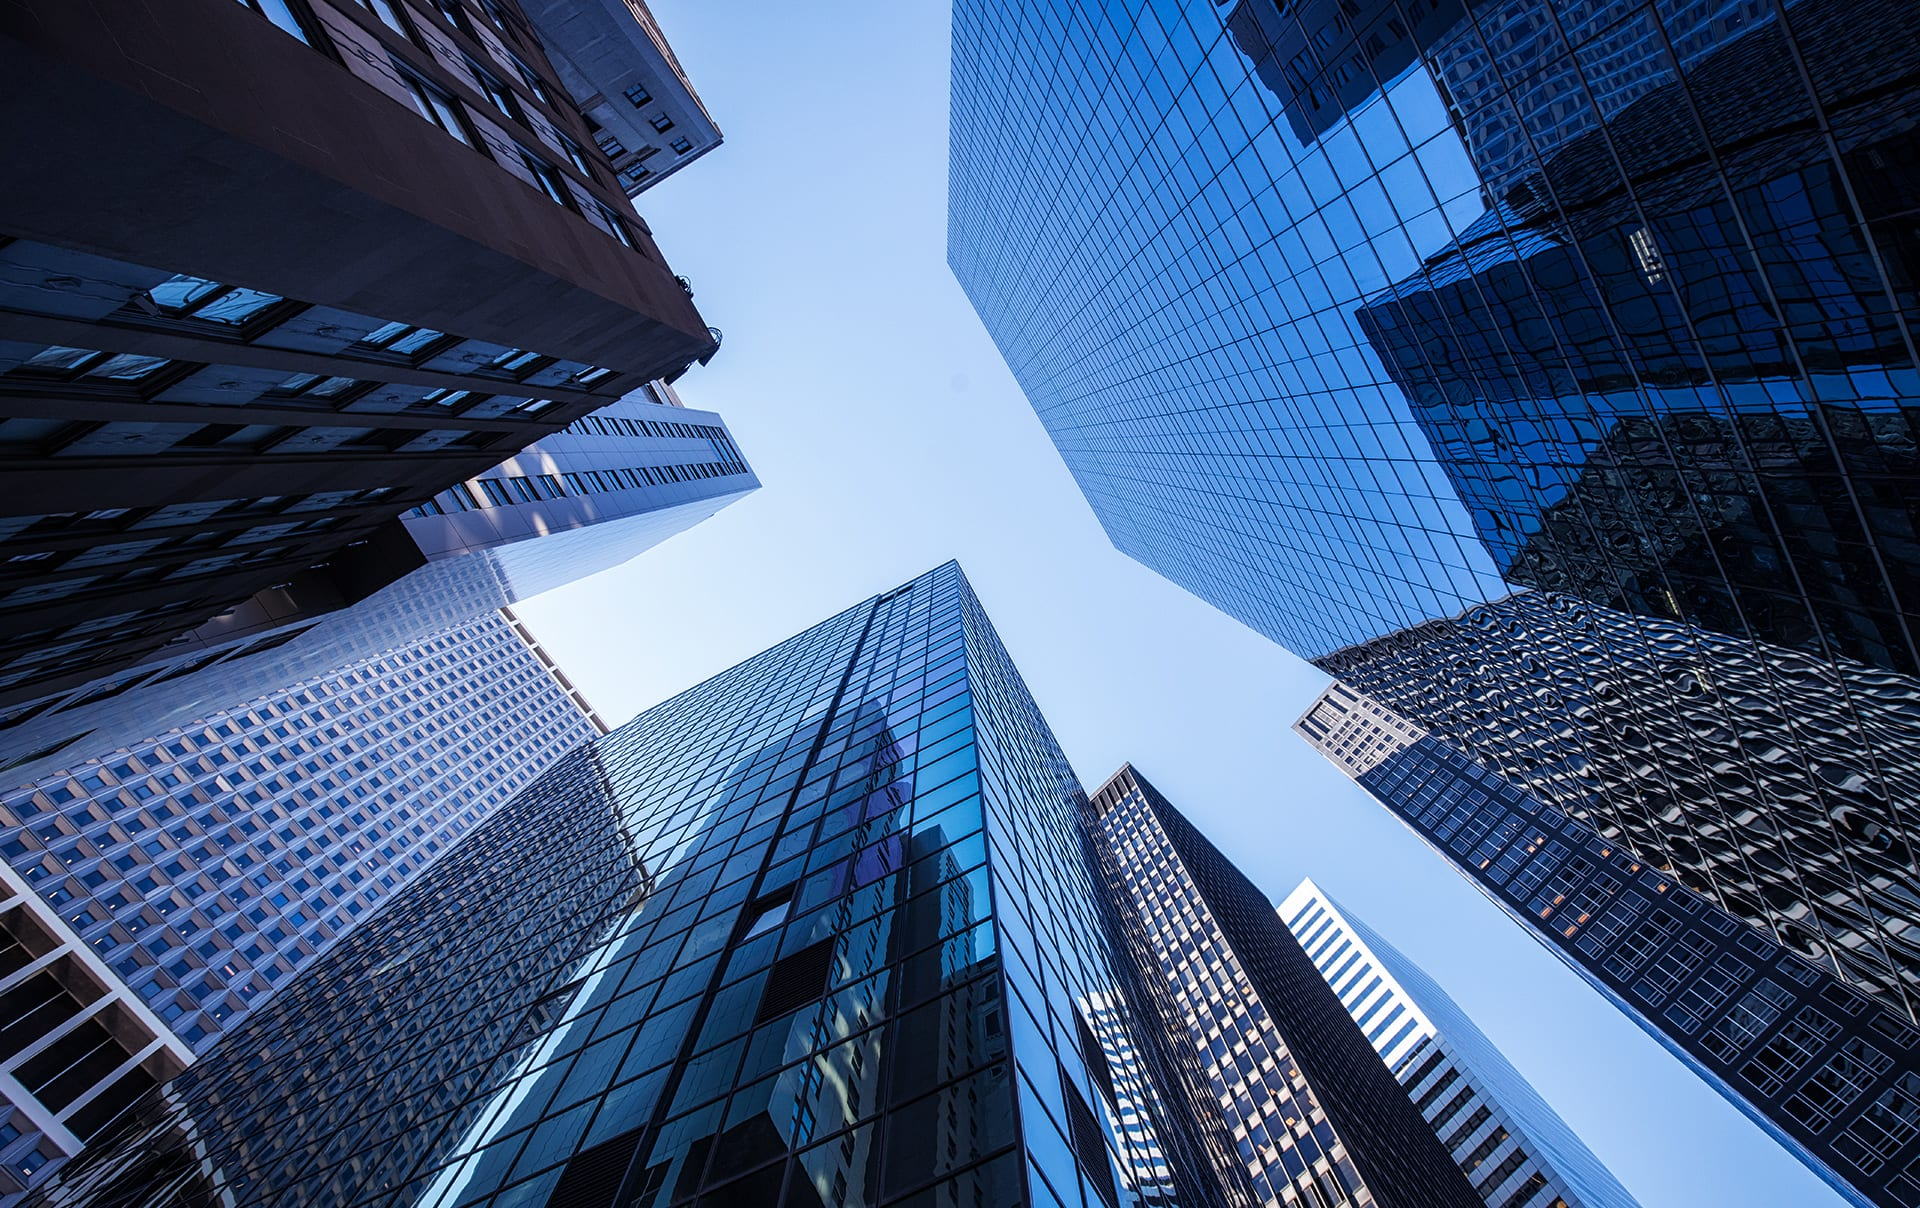 A view looking up at skyscrapers